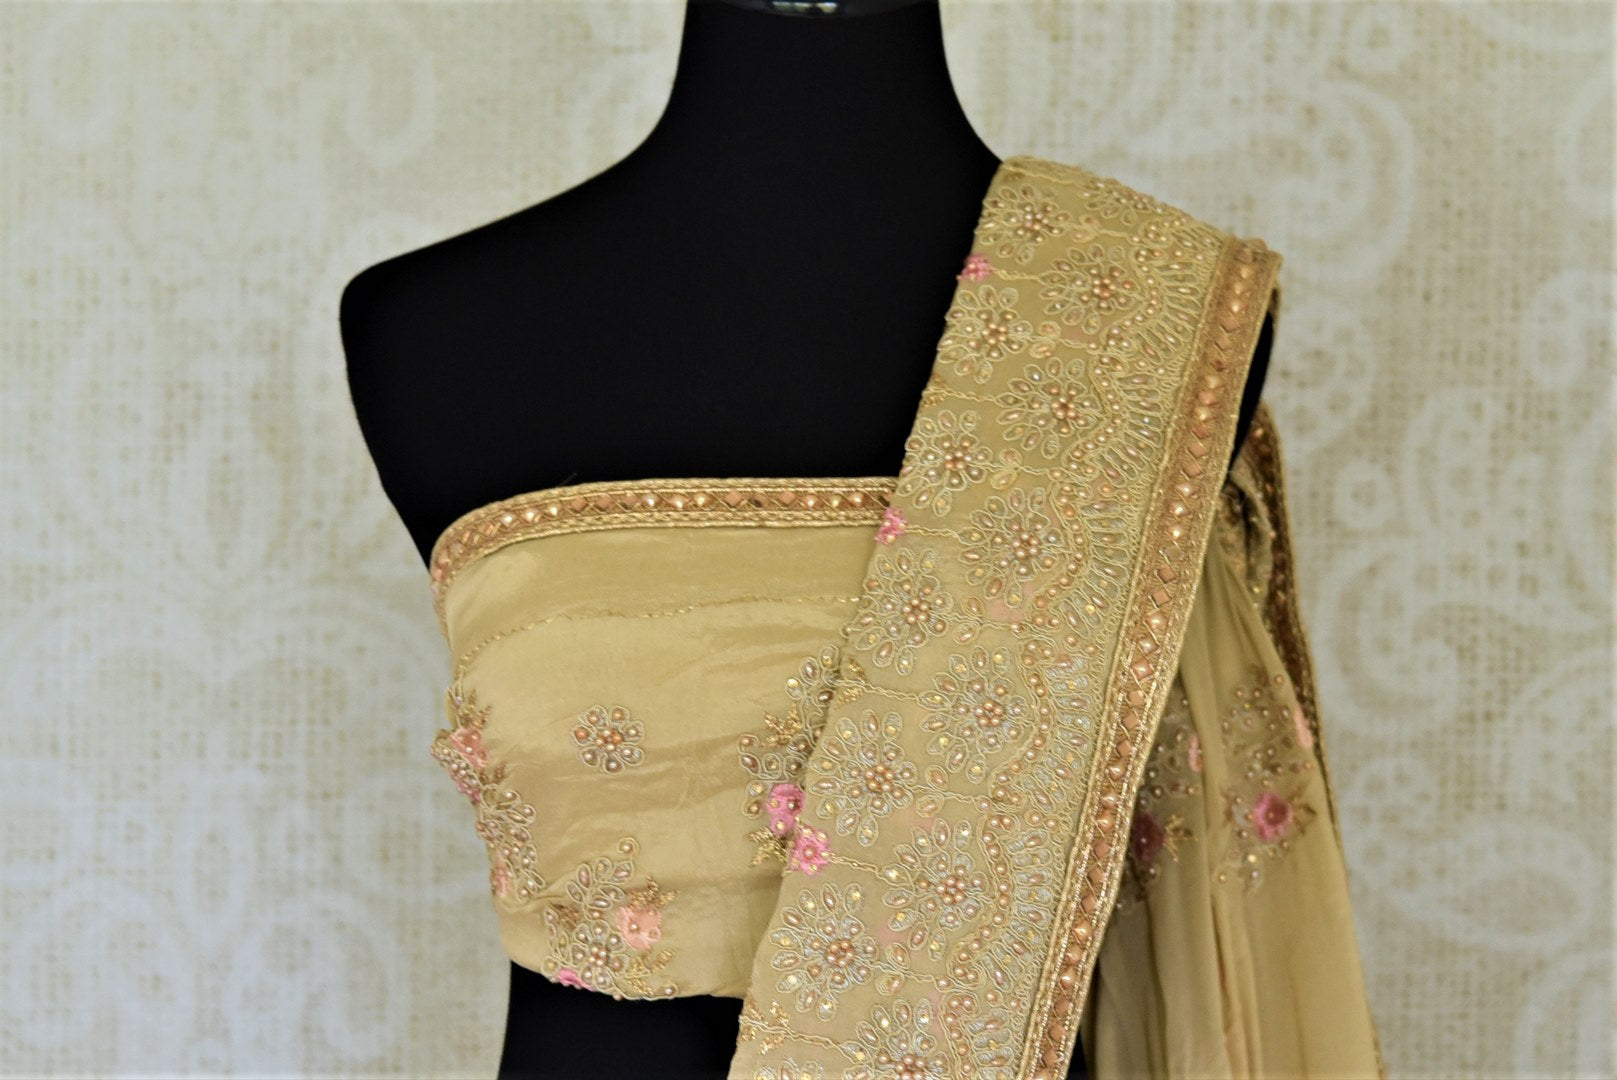 Buy stunning beige pearl embroidery chiffon saree online in USA. Enhance your traditional saree style at weddings and festive occasions with designer sarees with blouse, handwoven sarees from Pure Elegance Indian clothing store in USA.-blouse pallu